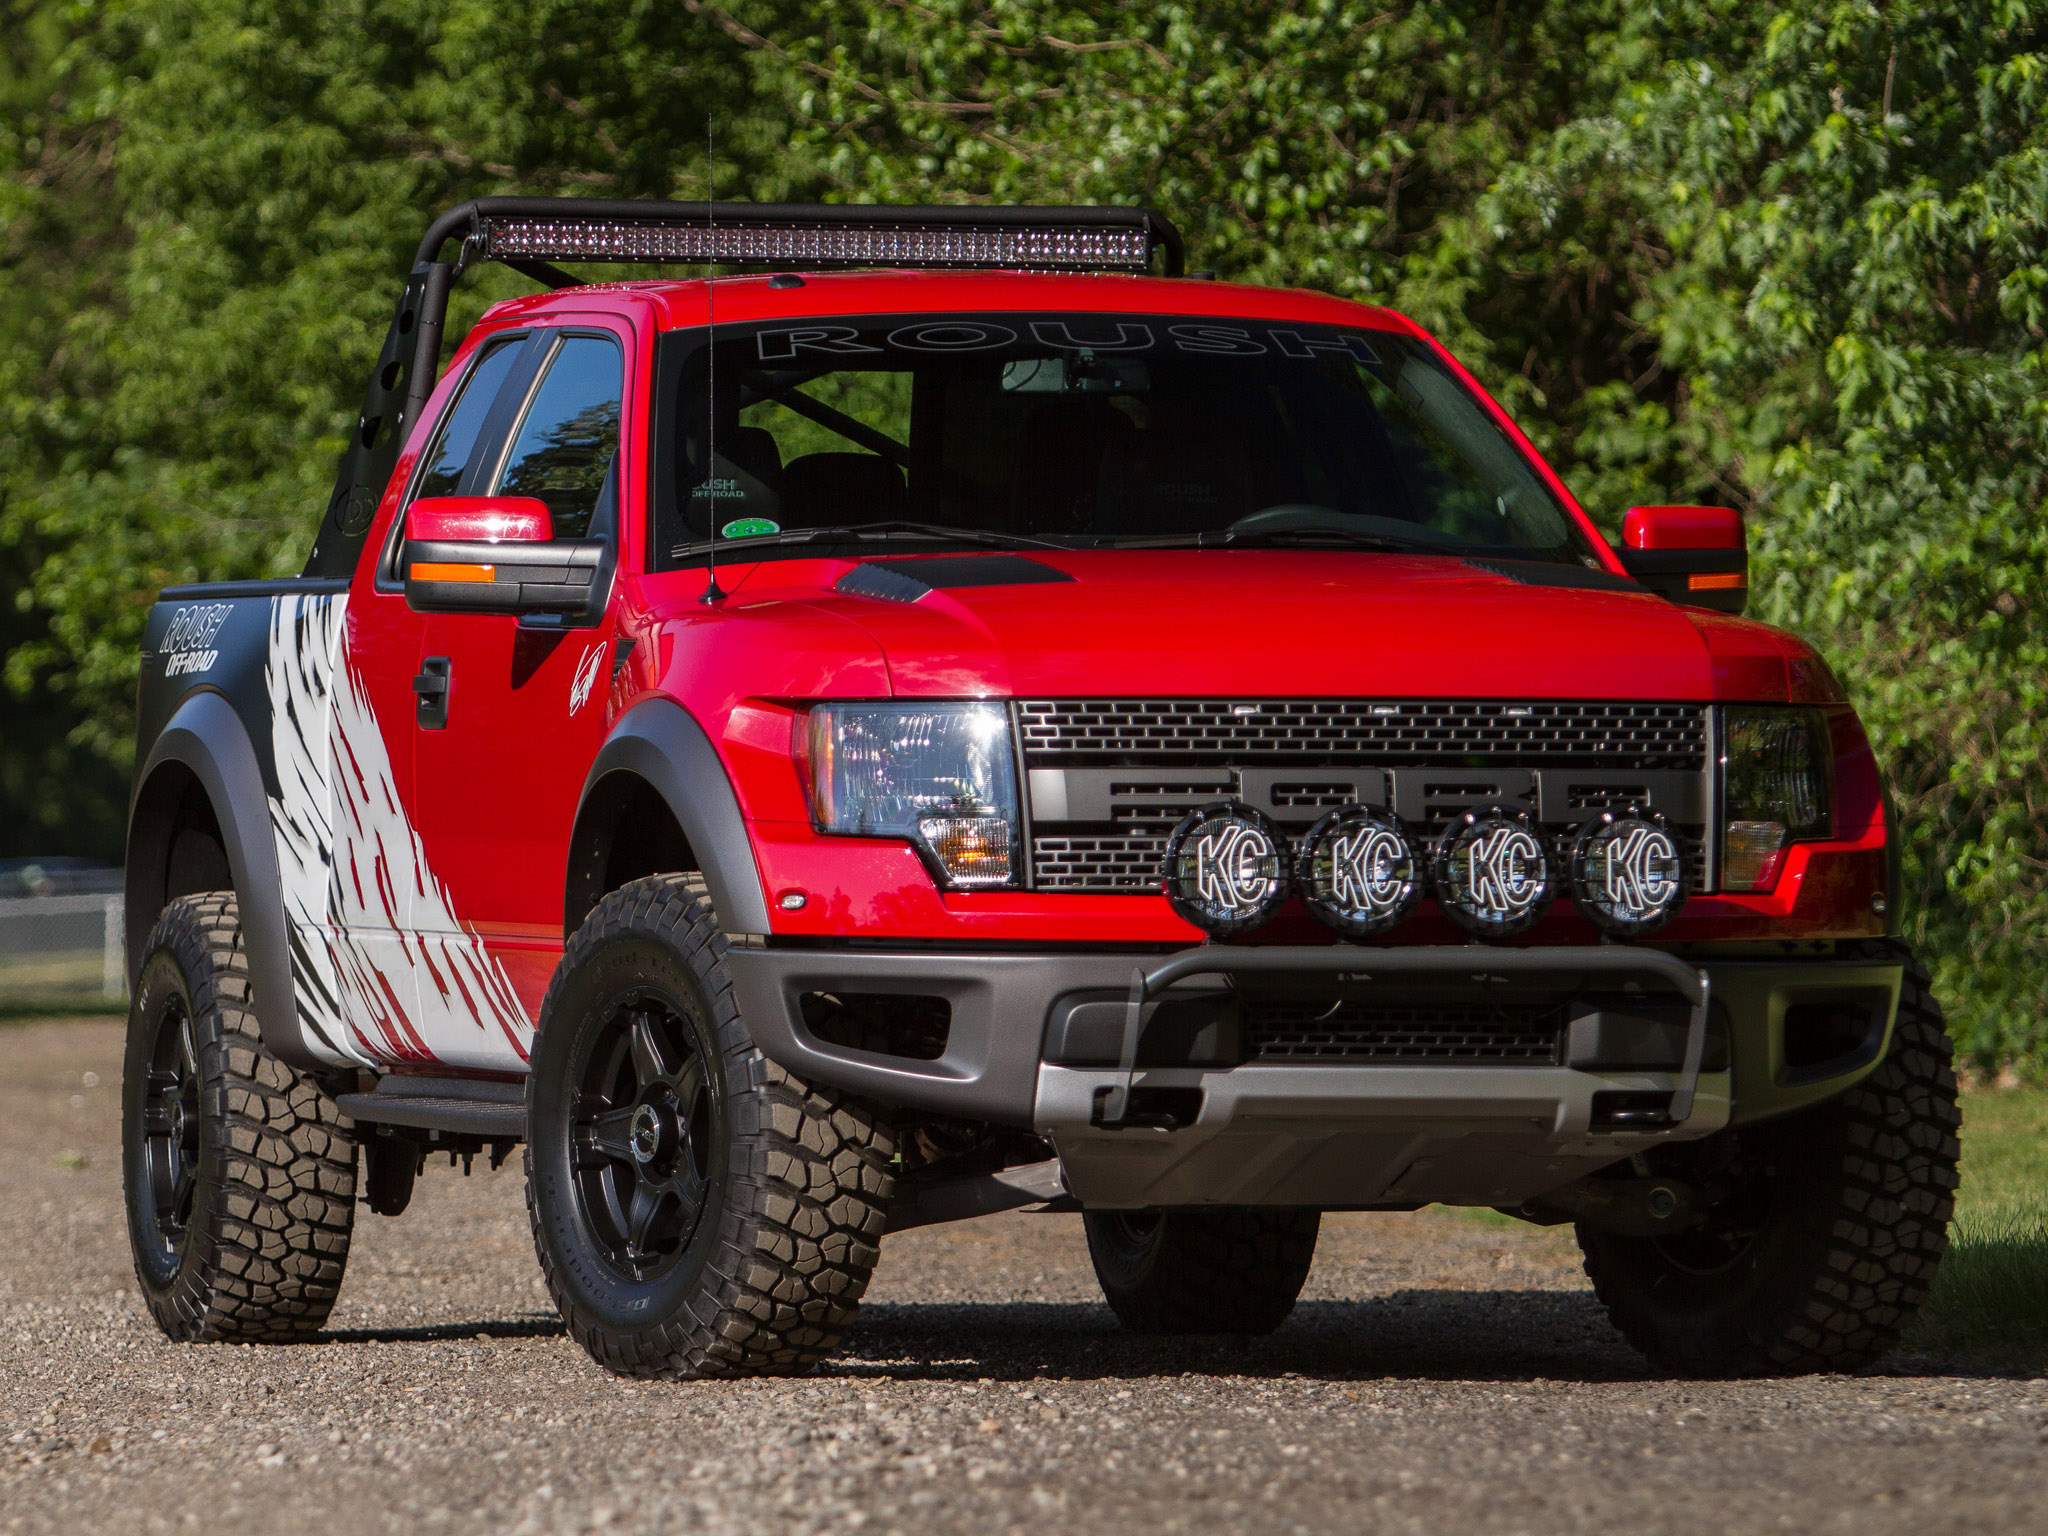 2012 roush ford f 150 svt raptor 4x4 muscle truck g wallpaper 2048x1536 110498 wallpaperup. Black Bedroom Furniture Sets. Home Design Ideas